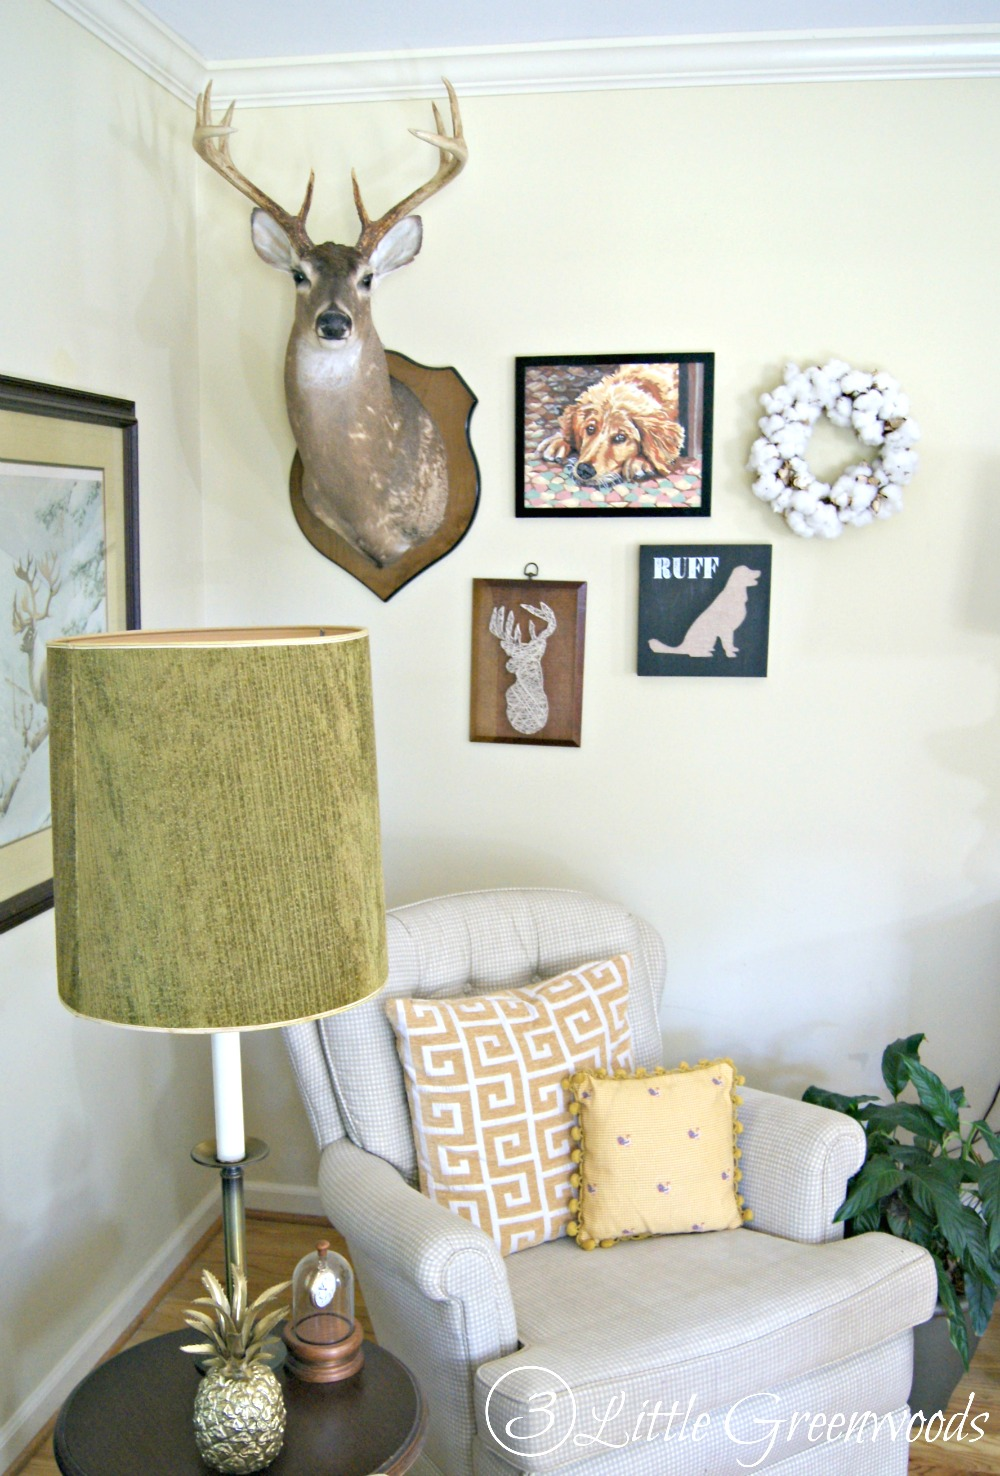 First Home Office Diy A Sourn Home Transformyour Space Home Office Diy Home  Office Diy Ideas. 17 Inspiration Gallery From Home Decorating Craft Ideas